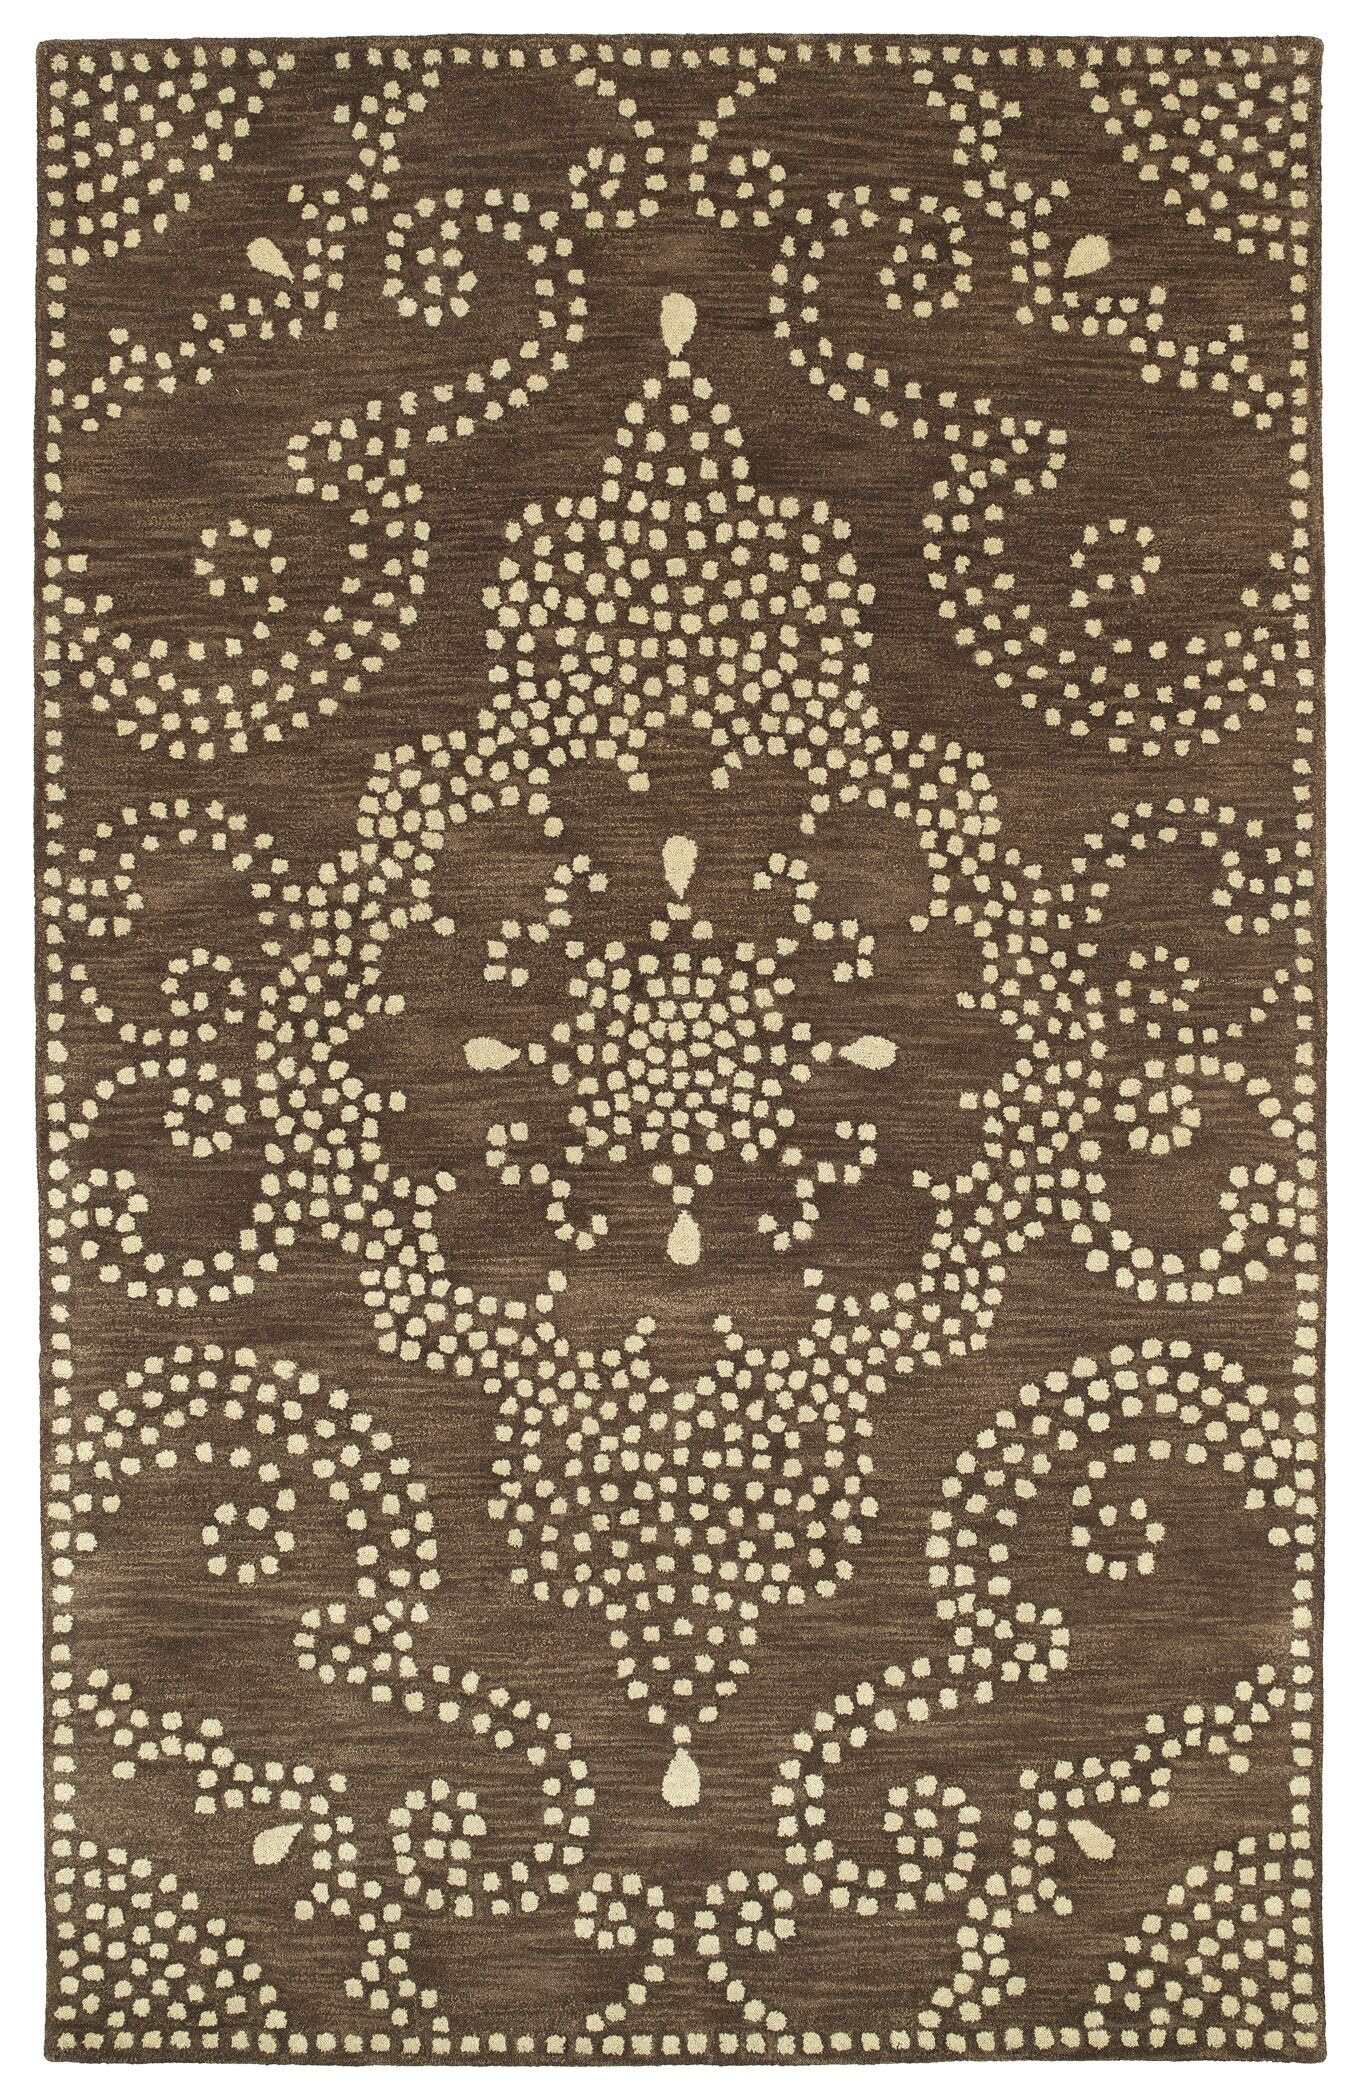 Bashford Hand Tufted Brown/Beige Area Rug Rug Size: Rectangle 5' x 7'9